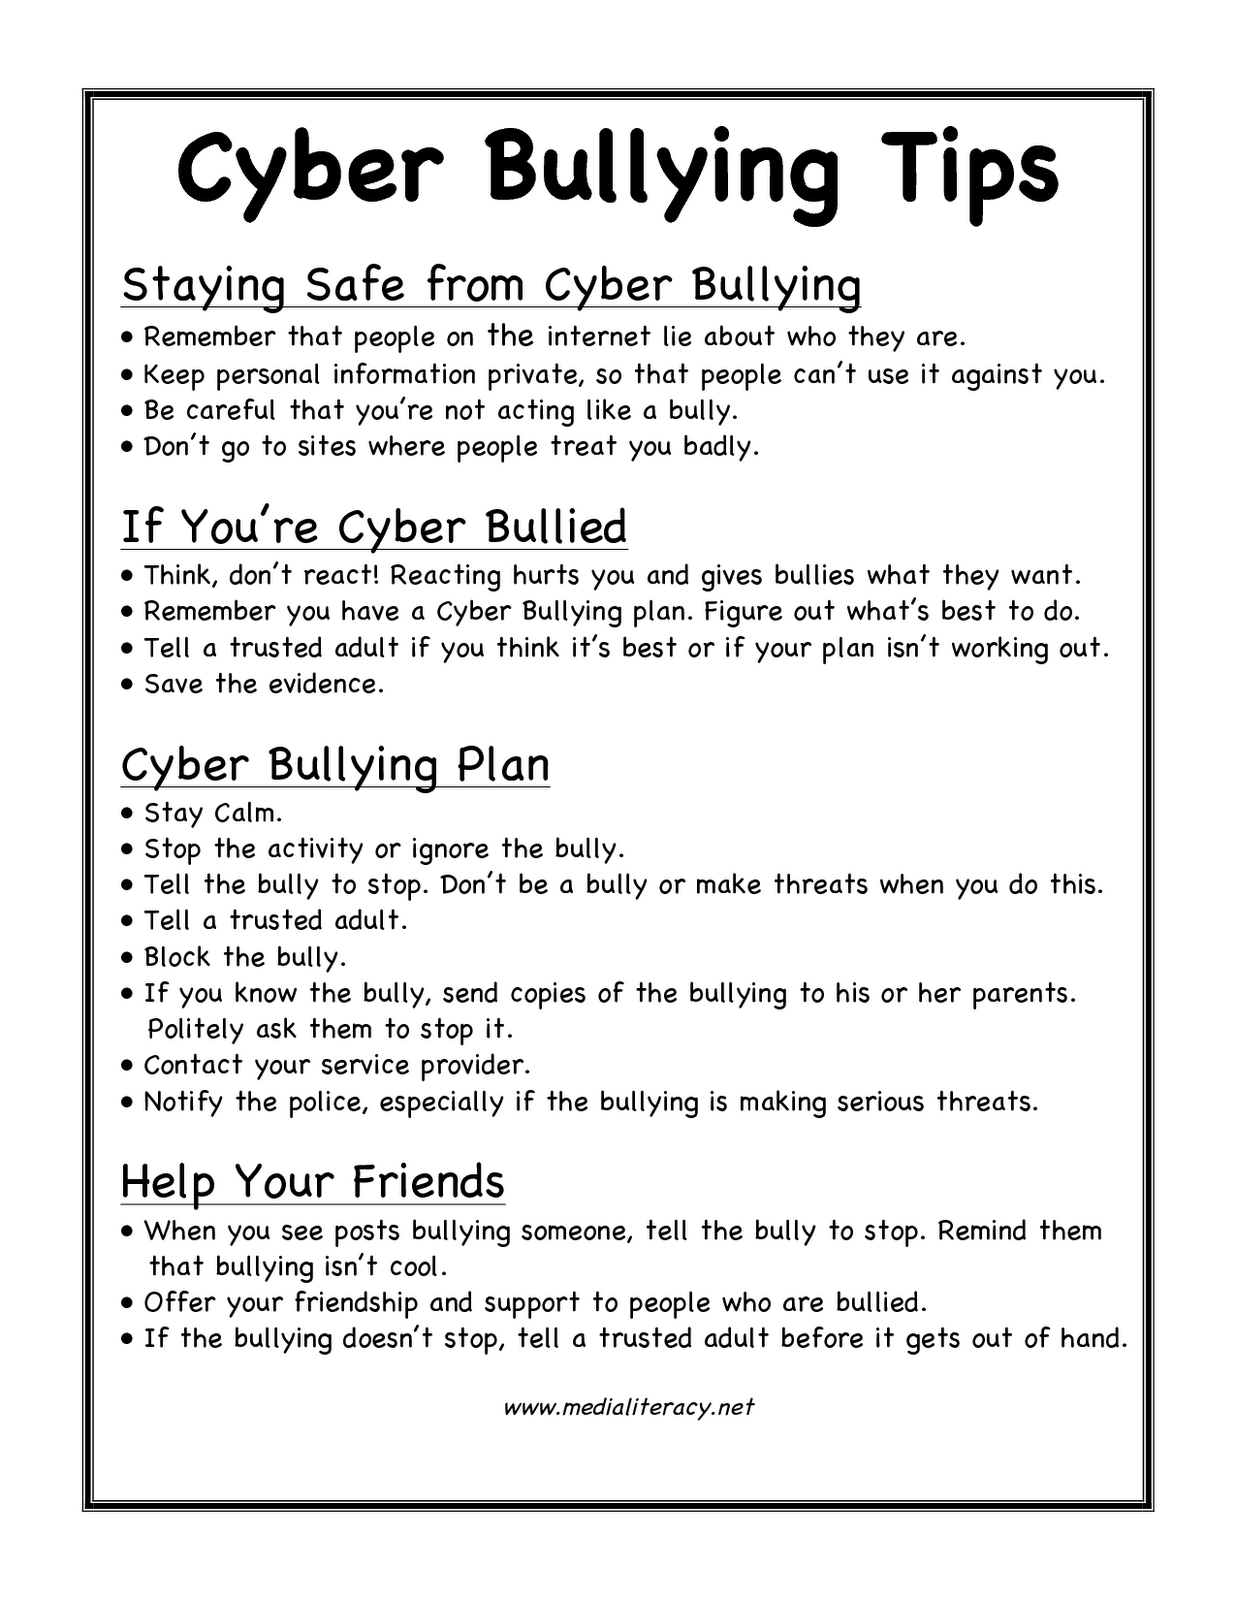 003 Cyberbullying Worksheets 424901 Essay Beautiful Conclusion Paragraph On Cyber Bullying Argumentative Topics Full